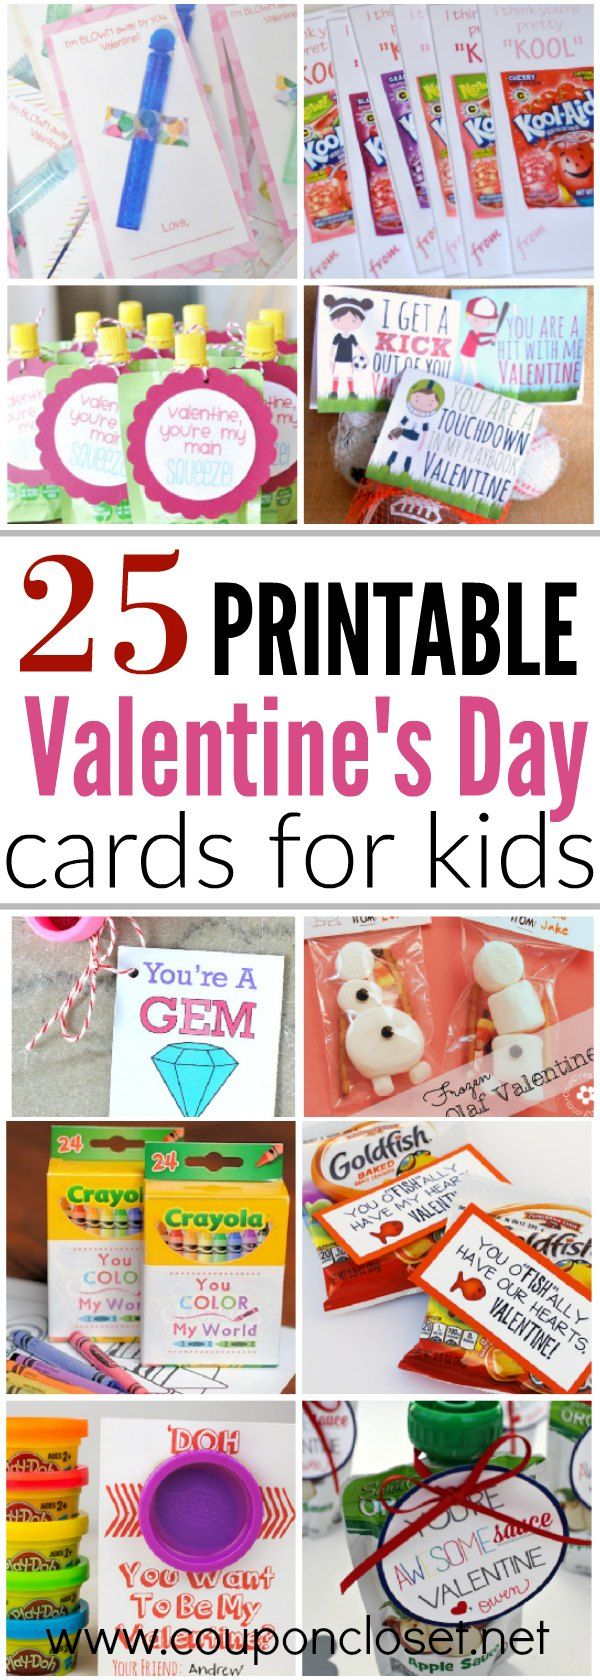 25 quick and easy Printable Valentines Day Cards for kids that you can print at home. 25 free Valentine Cards that you can easily make at home.